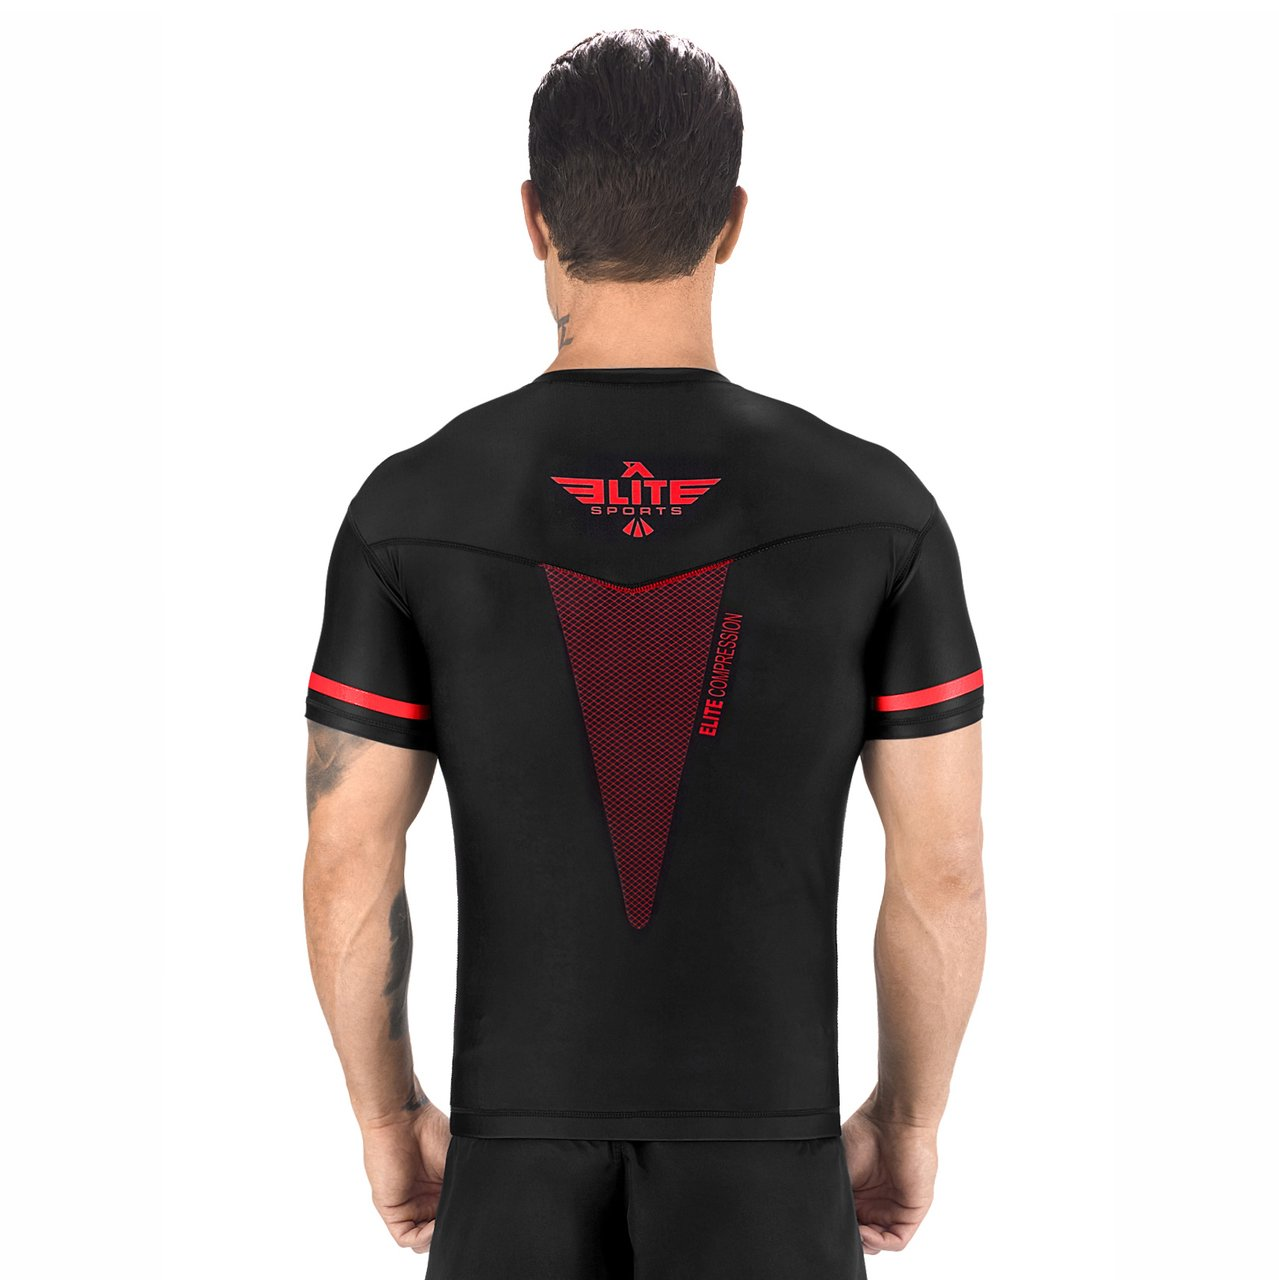 Load image into Gallery viewer, Elite Sports Star Series Sublimation Black/Red Short Sleeve Rash Guard